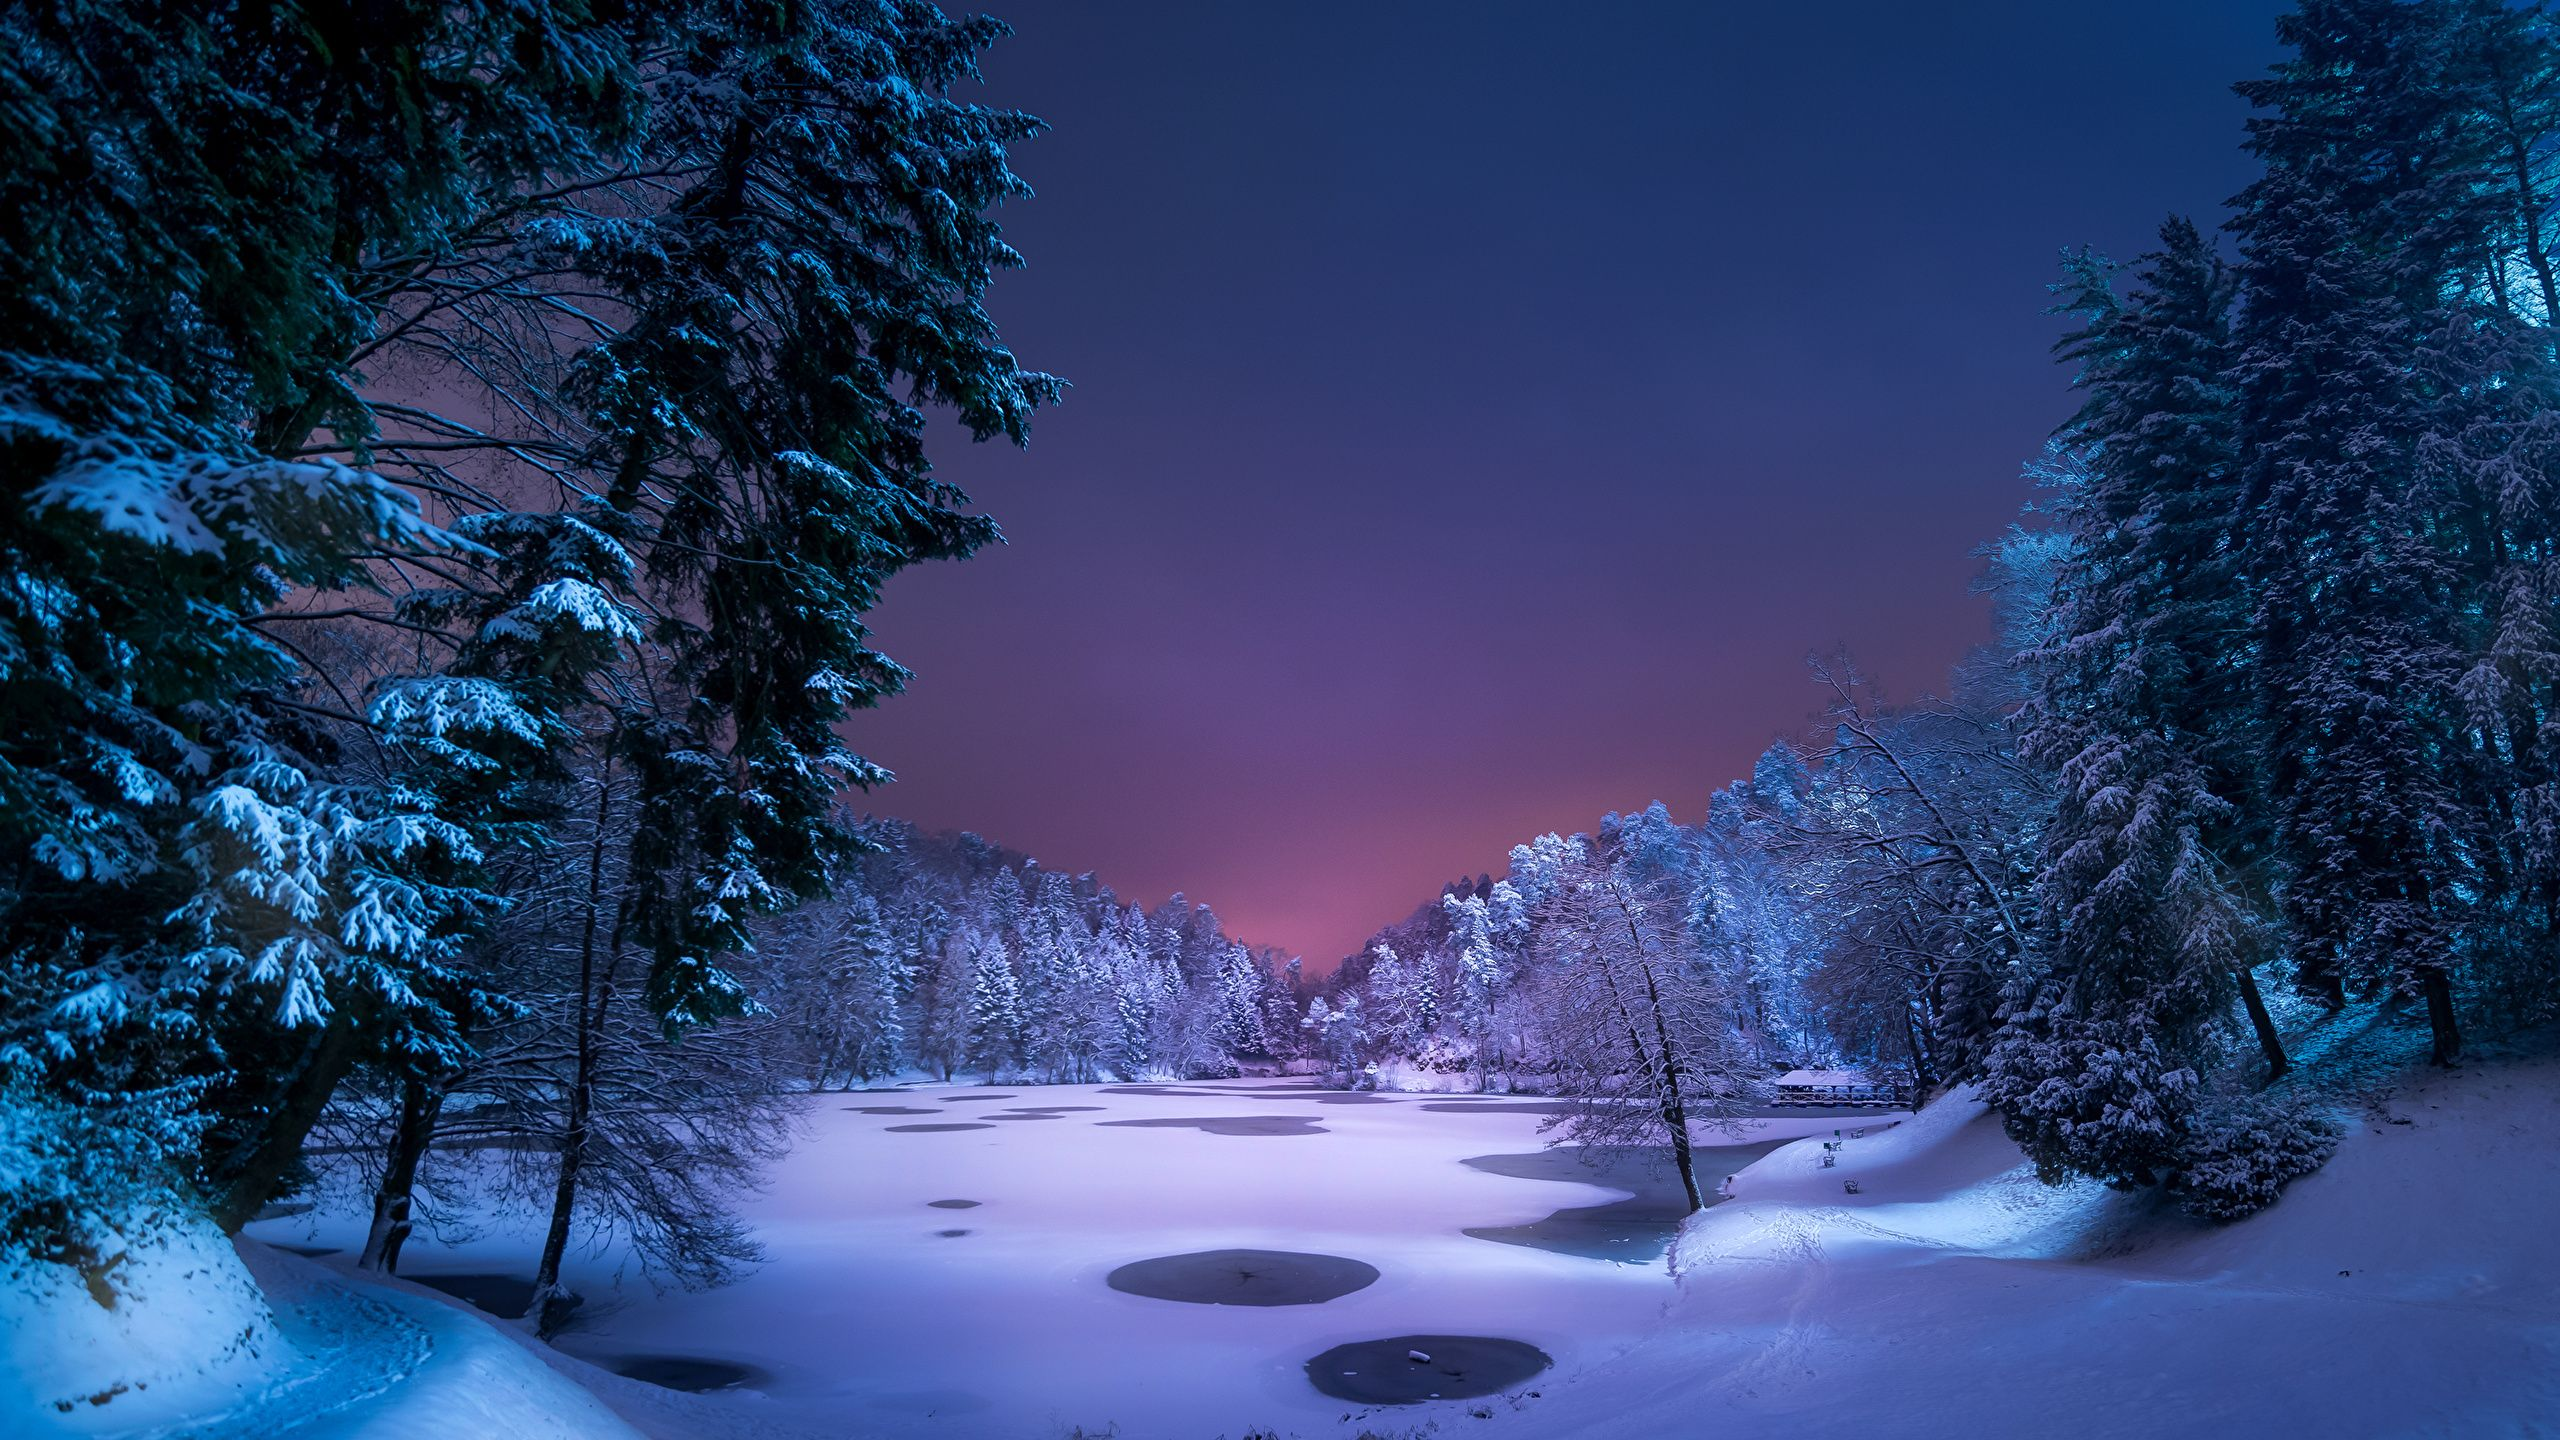 Winter Night 2560x1440 Wallpapers Wallpaper Cave